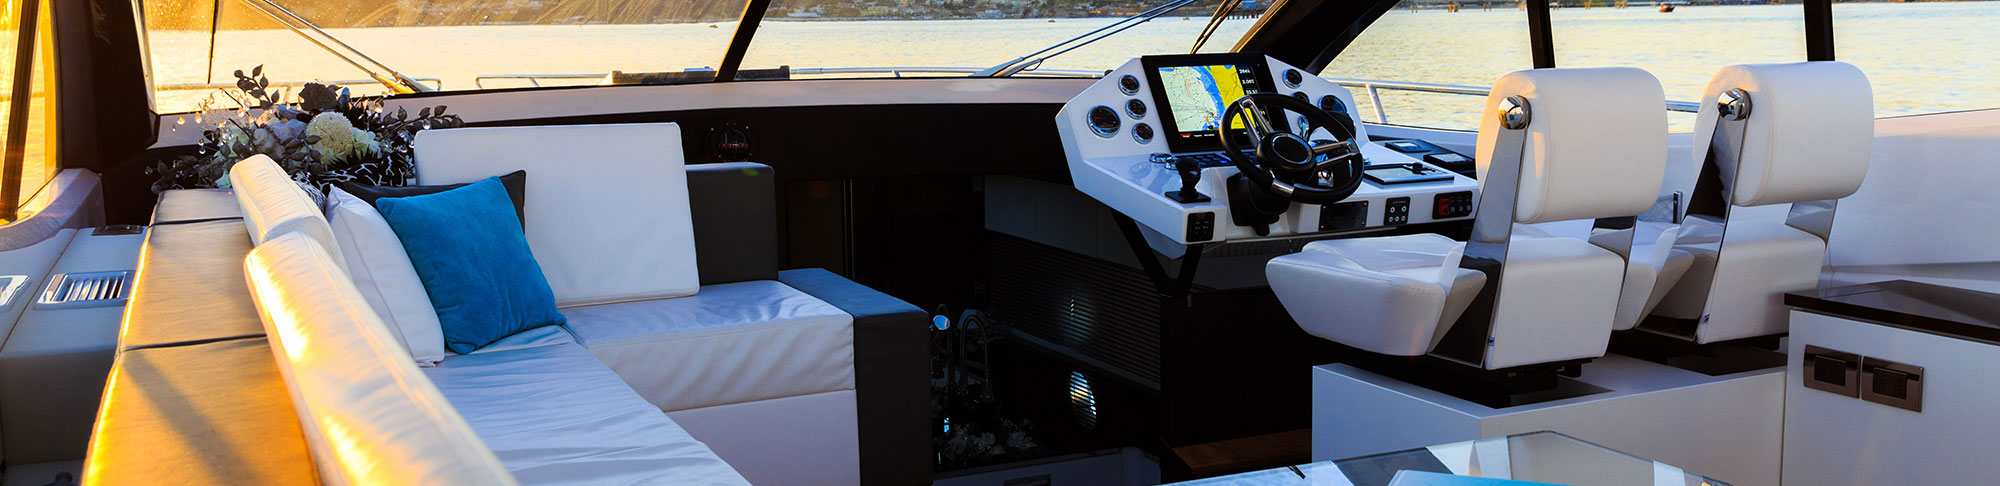 white leather interior of luxury yacht boat